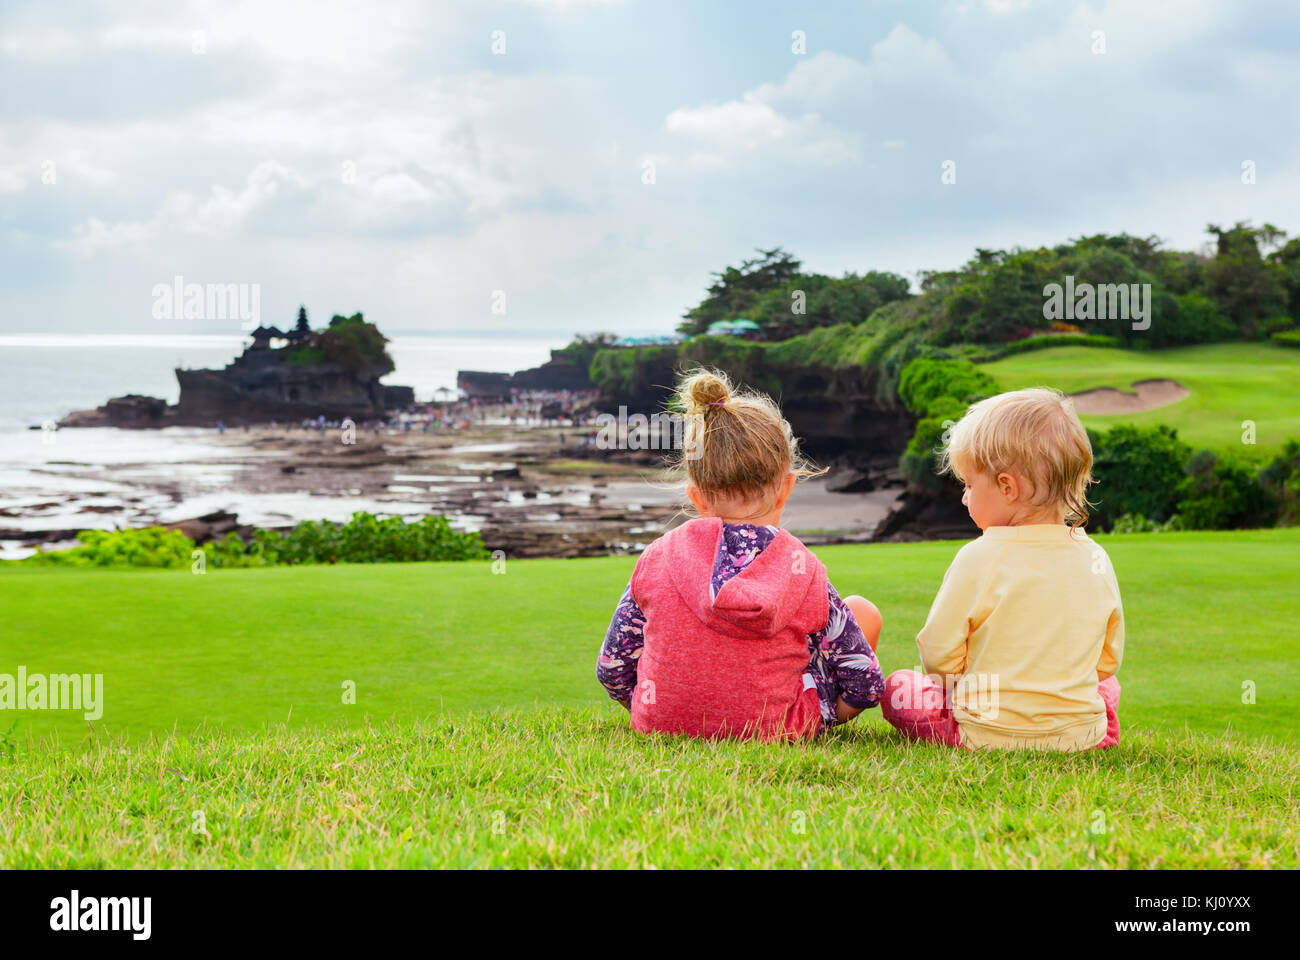 Happy kids at walk. Brother and sister sit on hill, look from high cliff at beach view, Balinese temple Tanah lot. - Stock Image